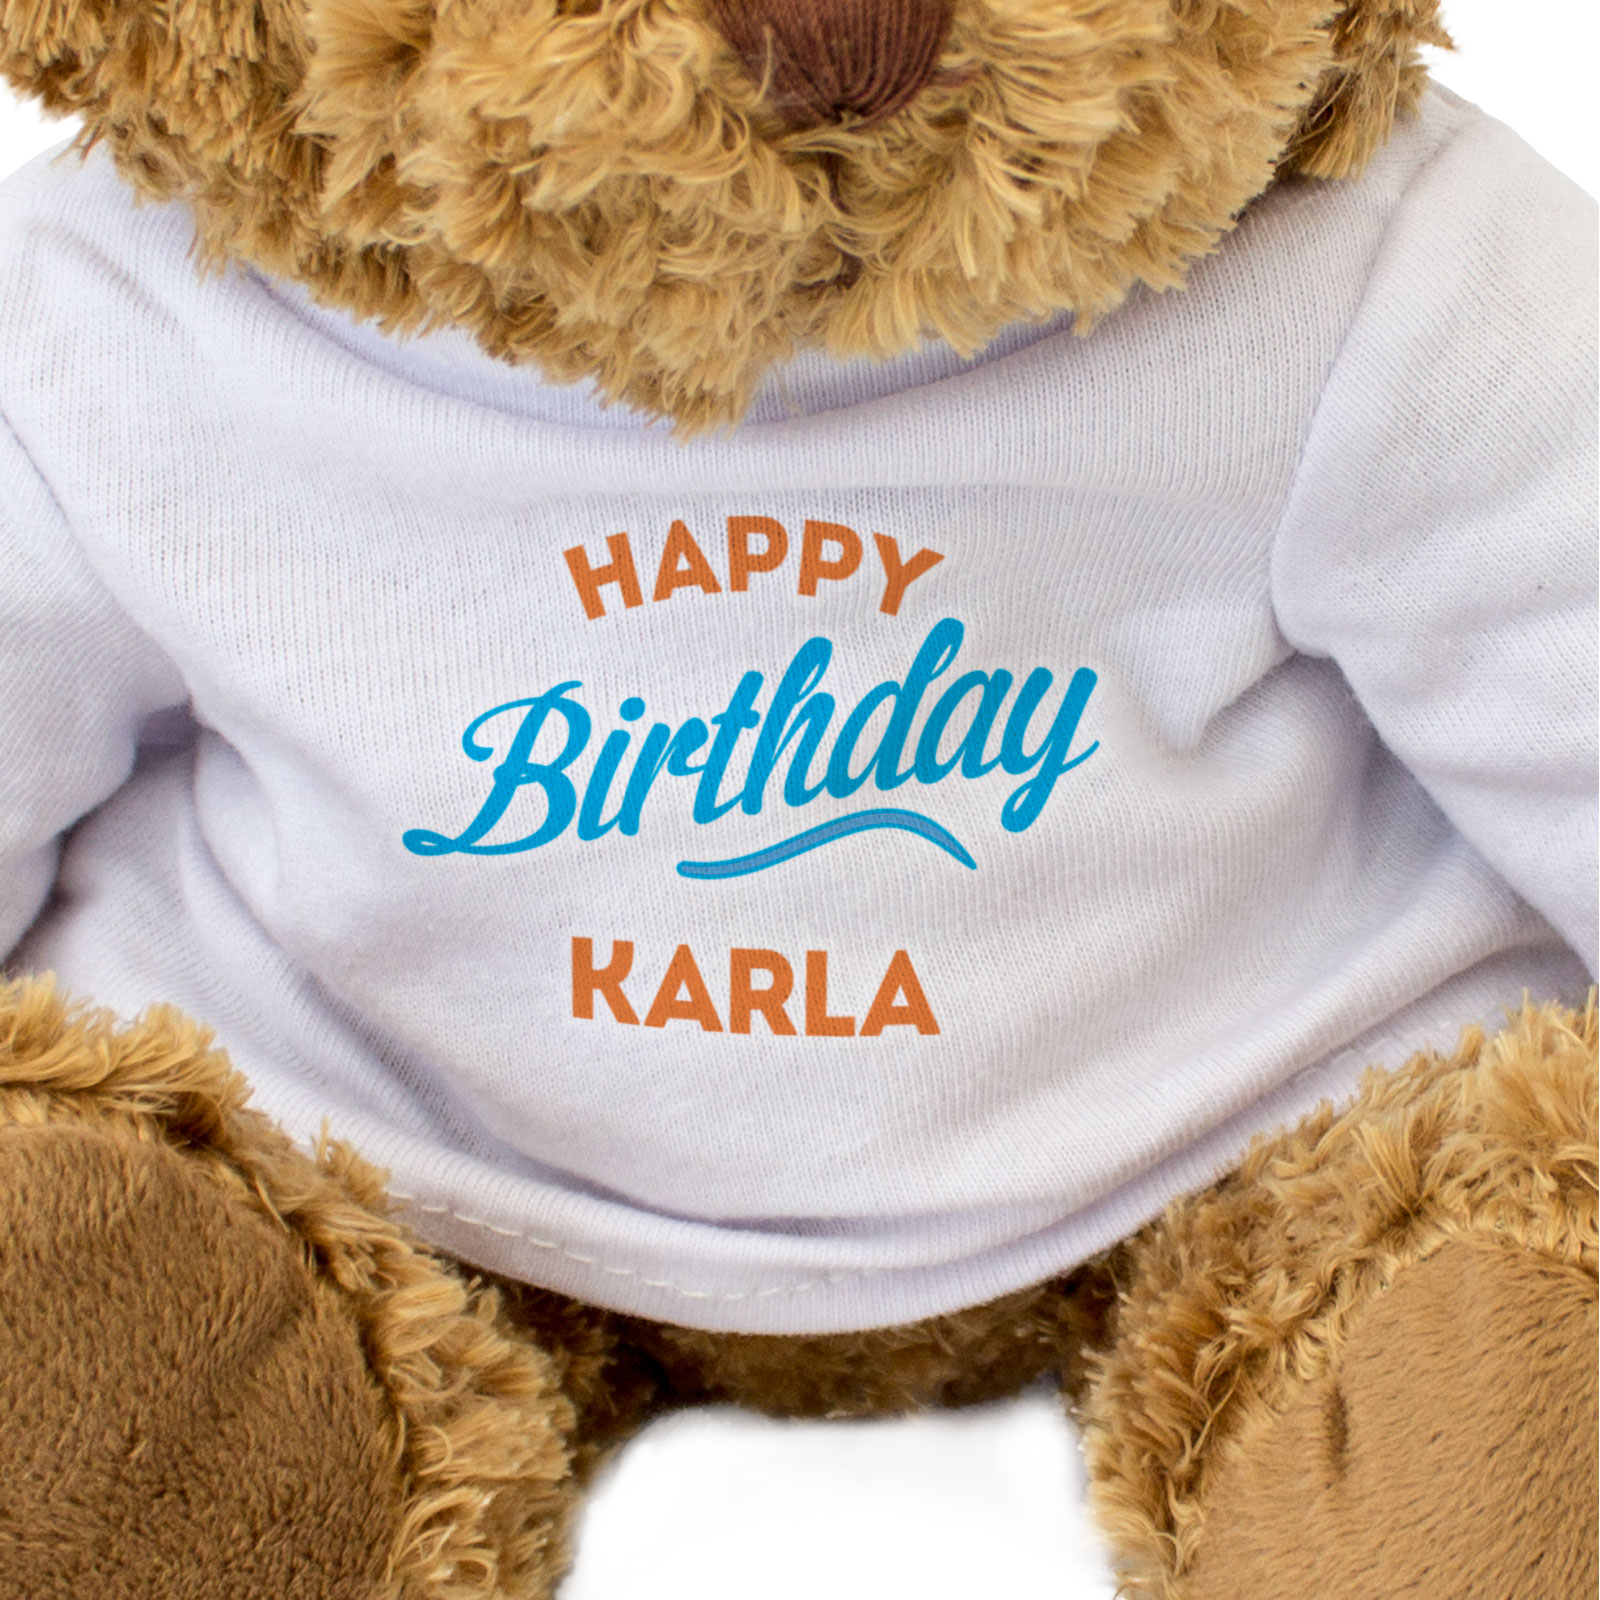 happy birthday karla ; happy-birthday-karla-bear-3